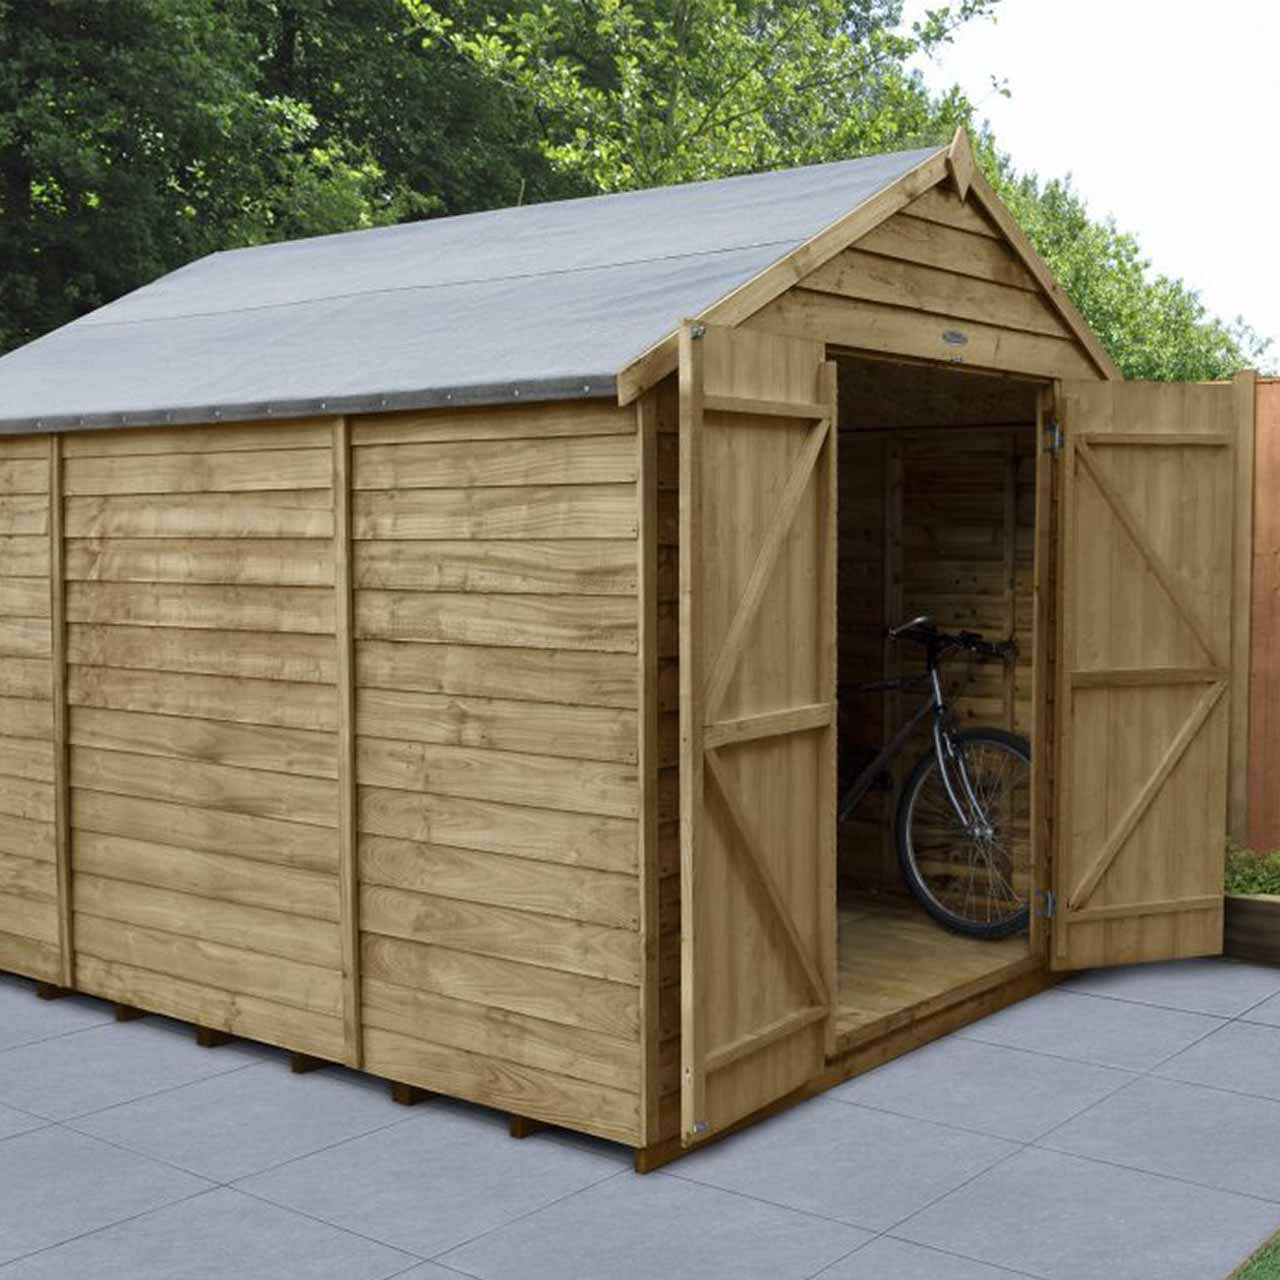 Overlap Pressure Treated 10×8 Apex Shed – Double Door, No Windows